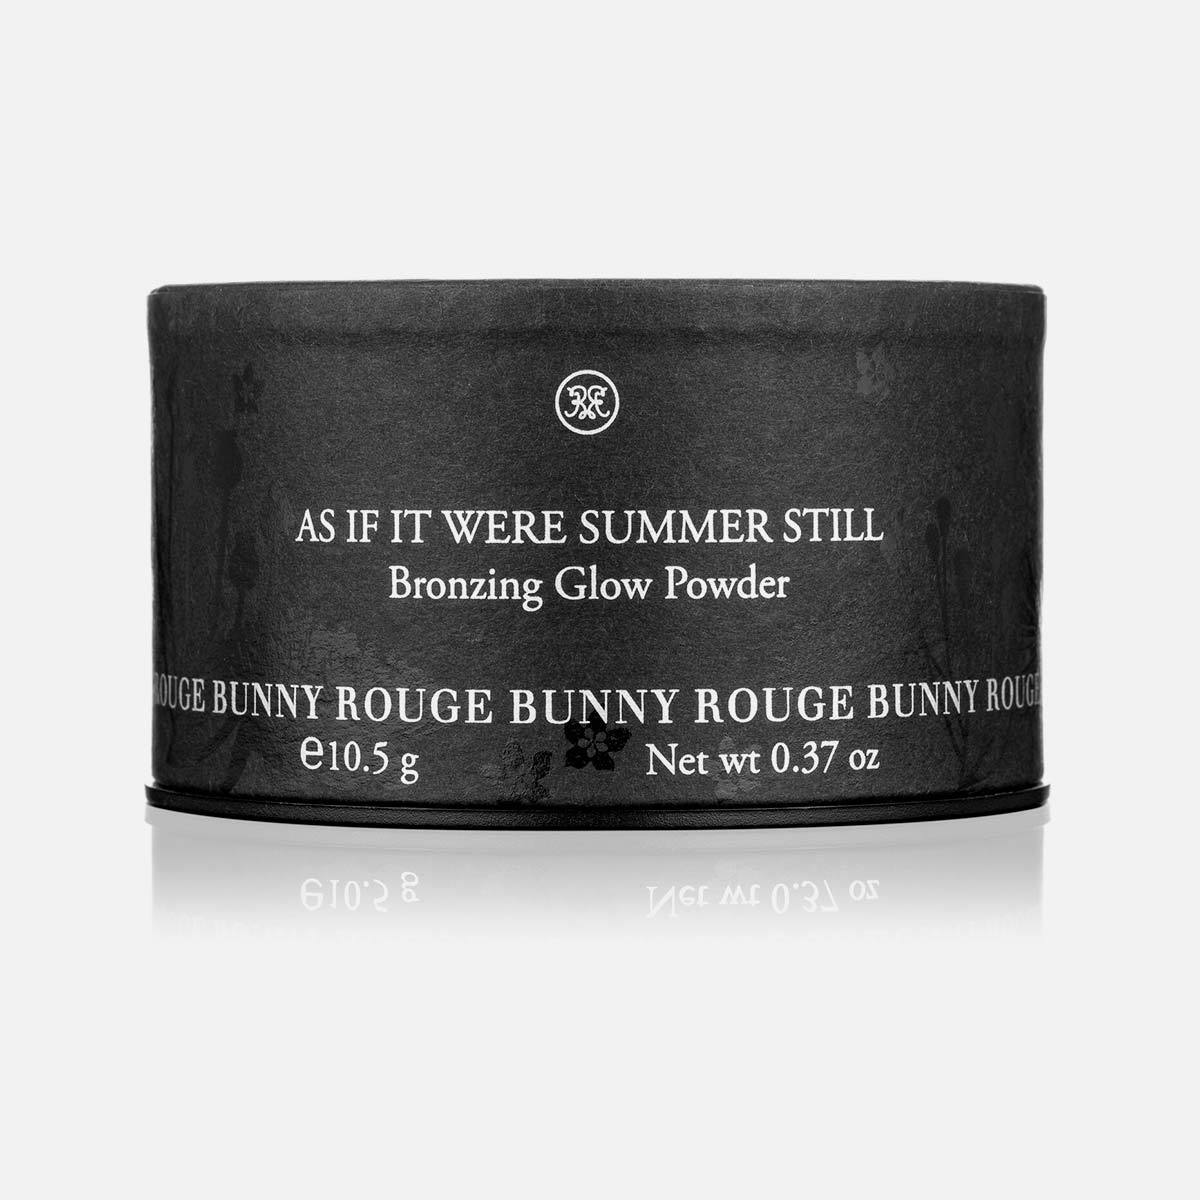 ROUGE BUNNY ROUGE Пудра-бронзат Для Лица Bronzing Glow Powder  07 тон-имбирные острова